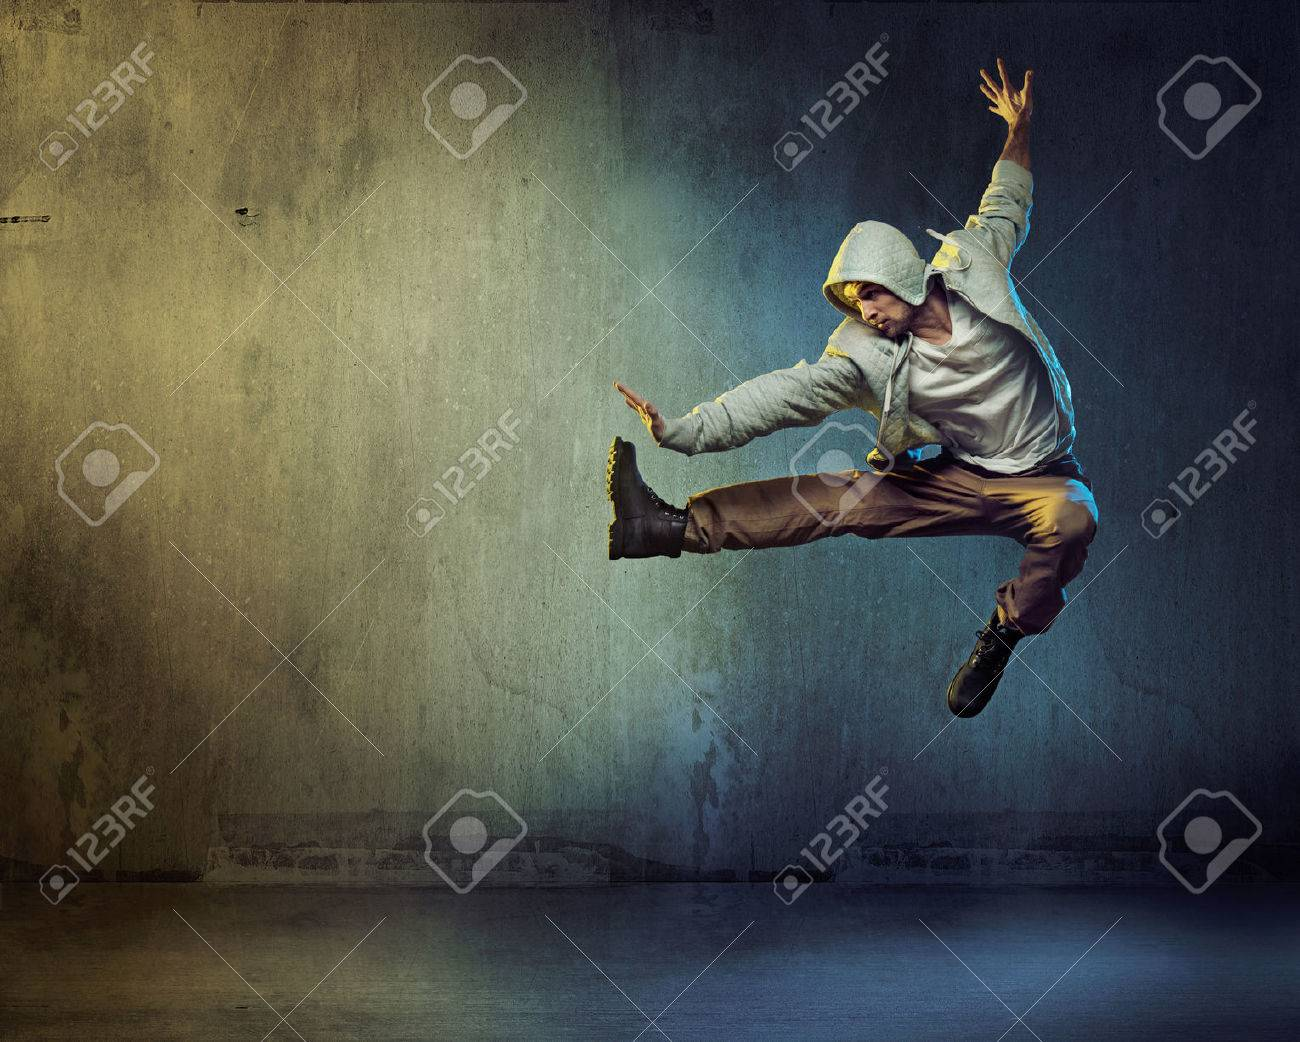 Athletic dancer in a super jumping pose - 53140584